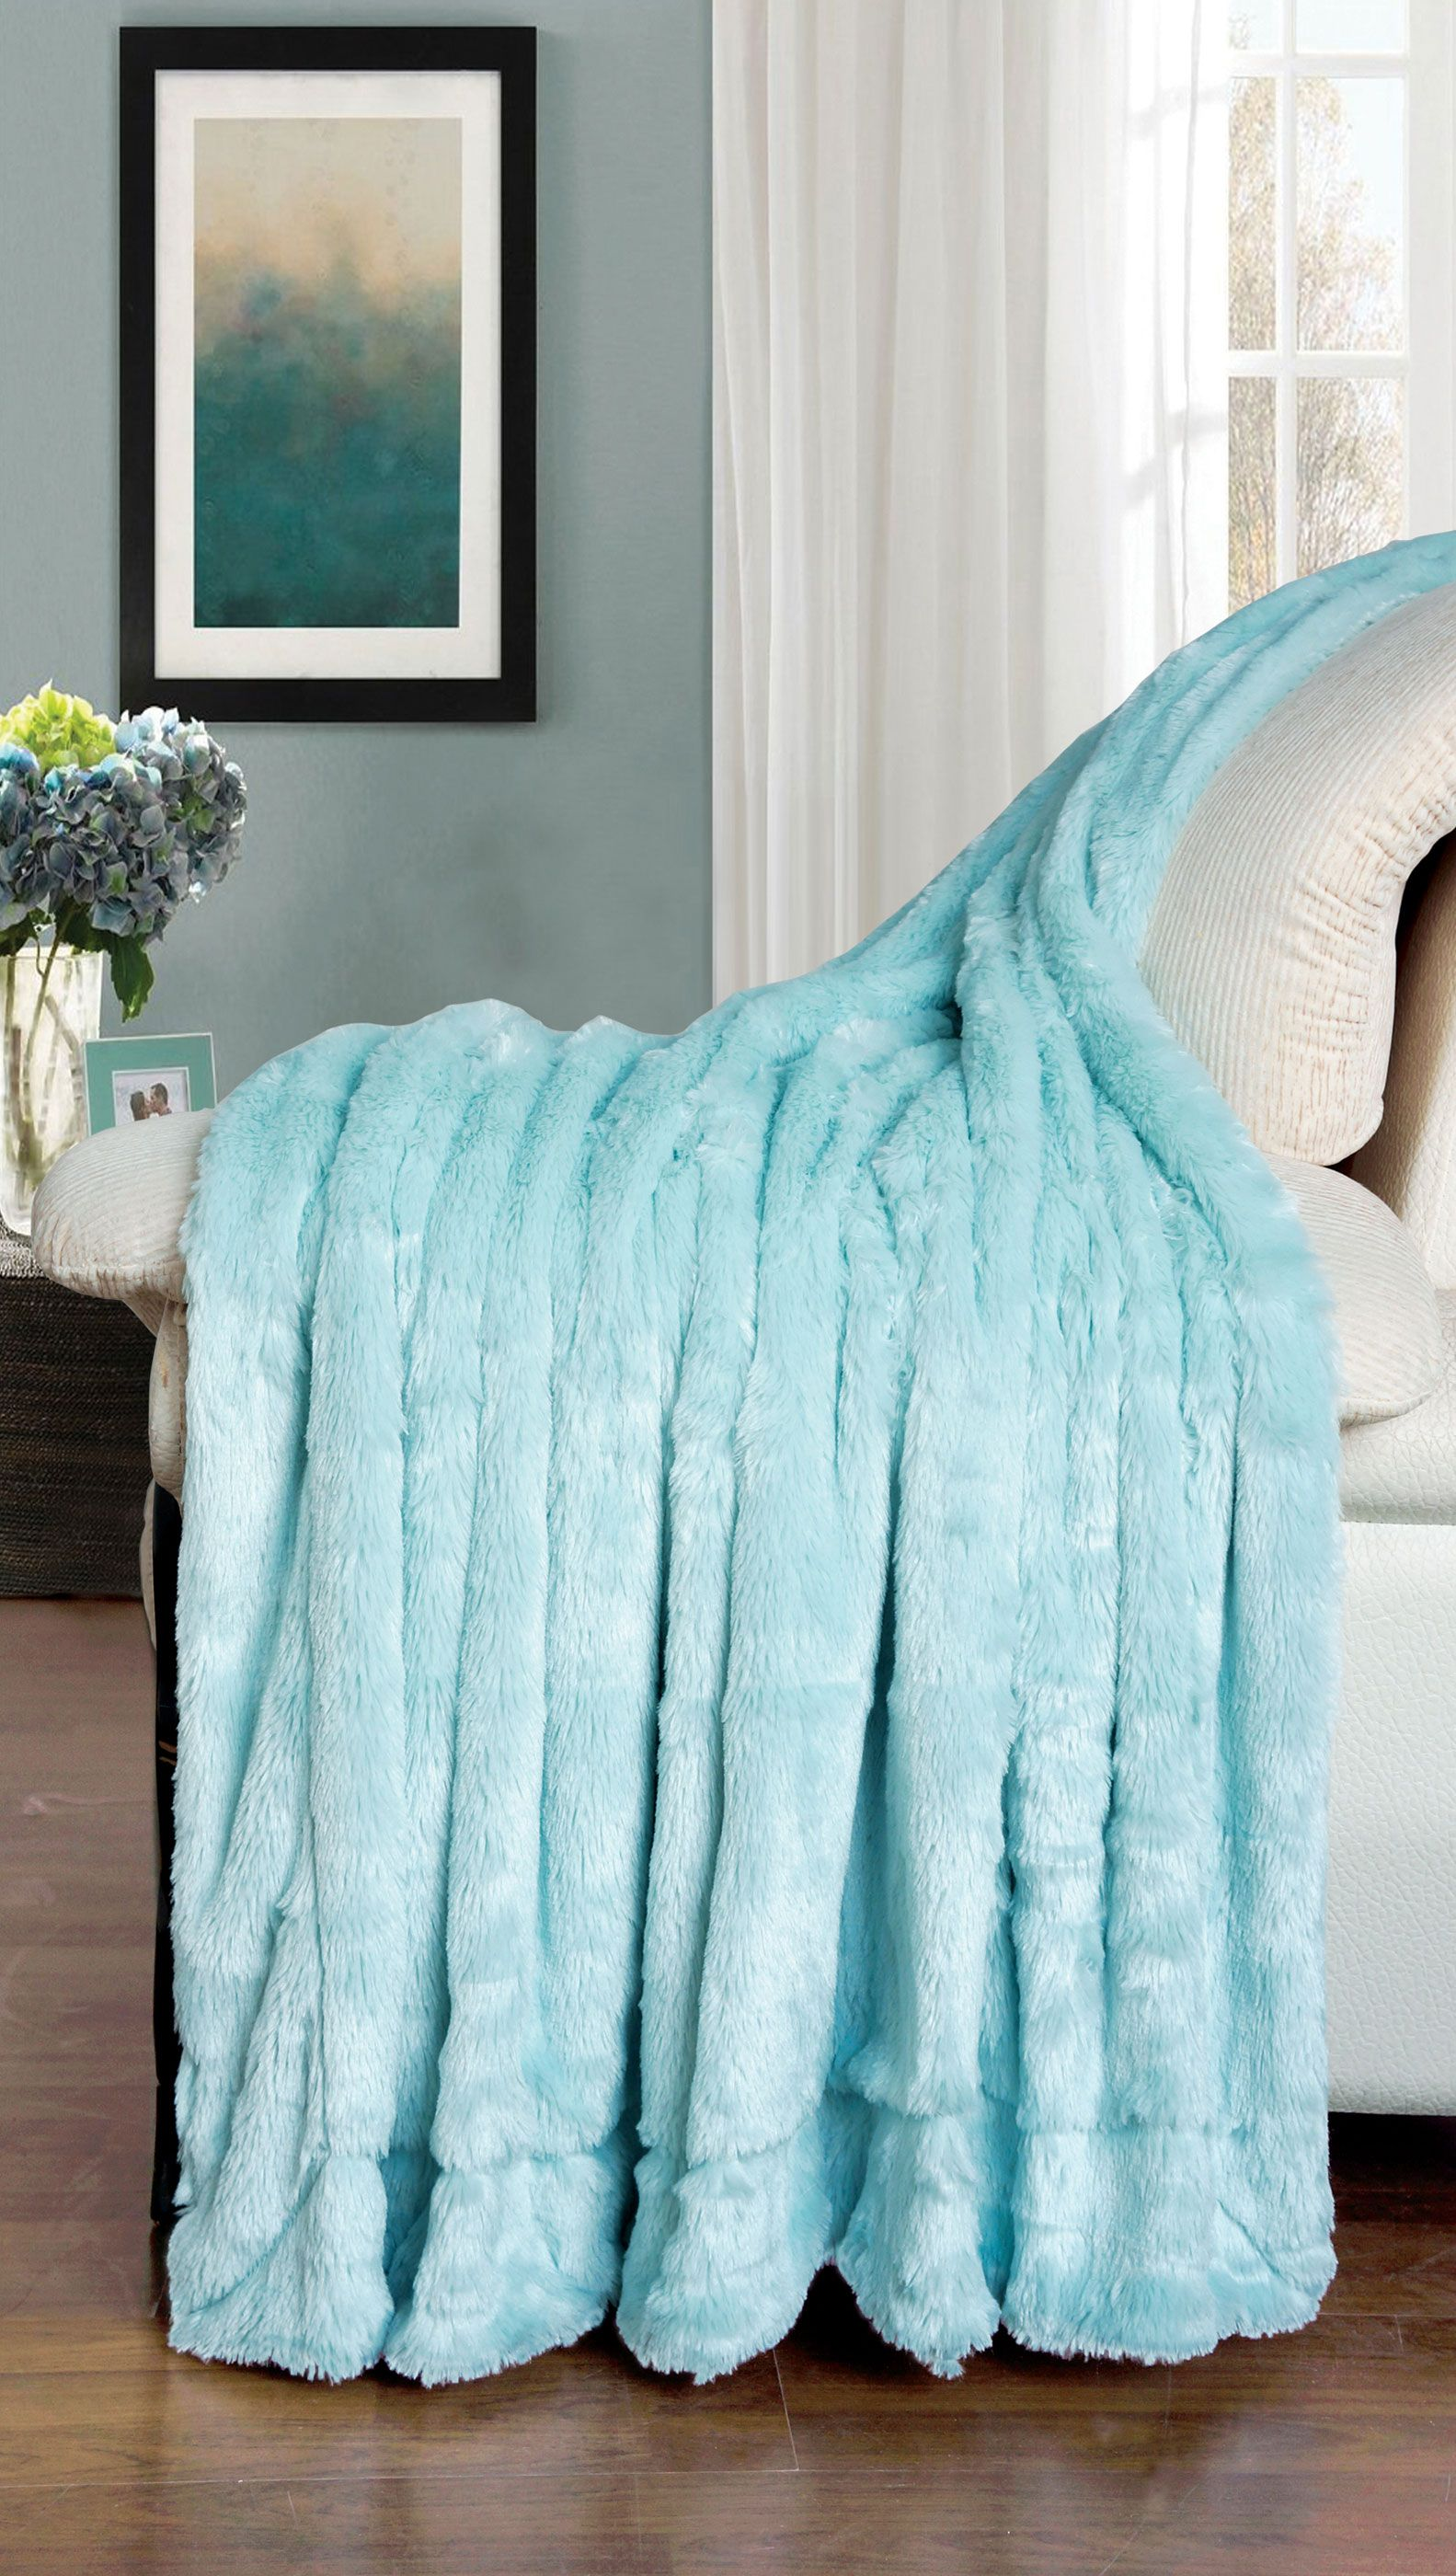 DOUBLE SIDED FAUX FUR OVERSIZED THROWS THROW BLANKET LIGHTBLUE